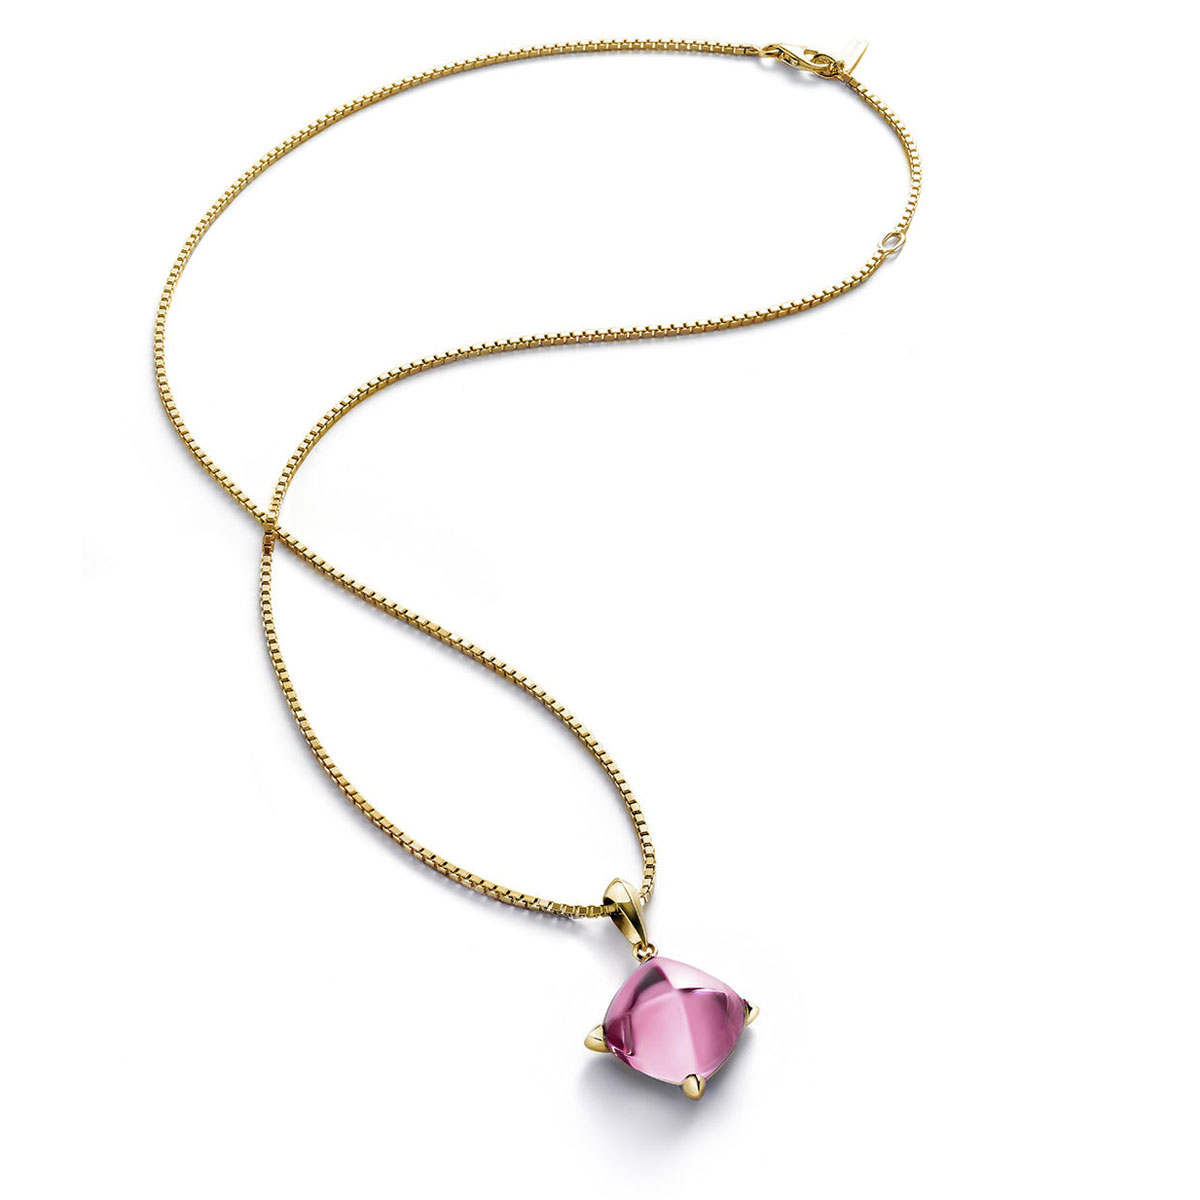 Baccarat Crystal Medicis Necklace Vermeil Gold Pink